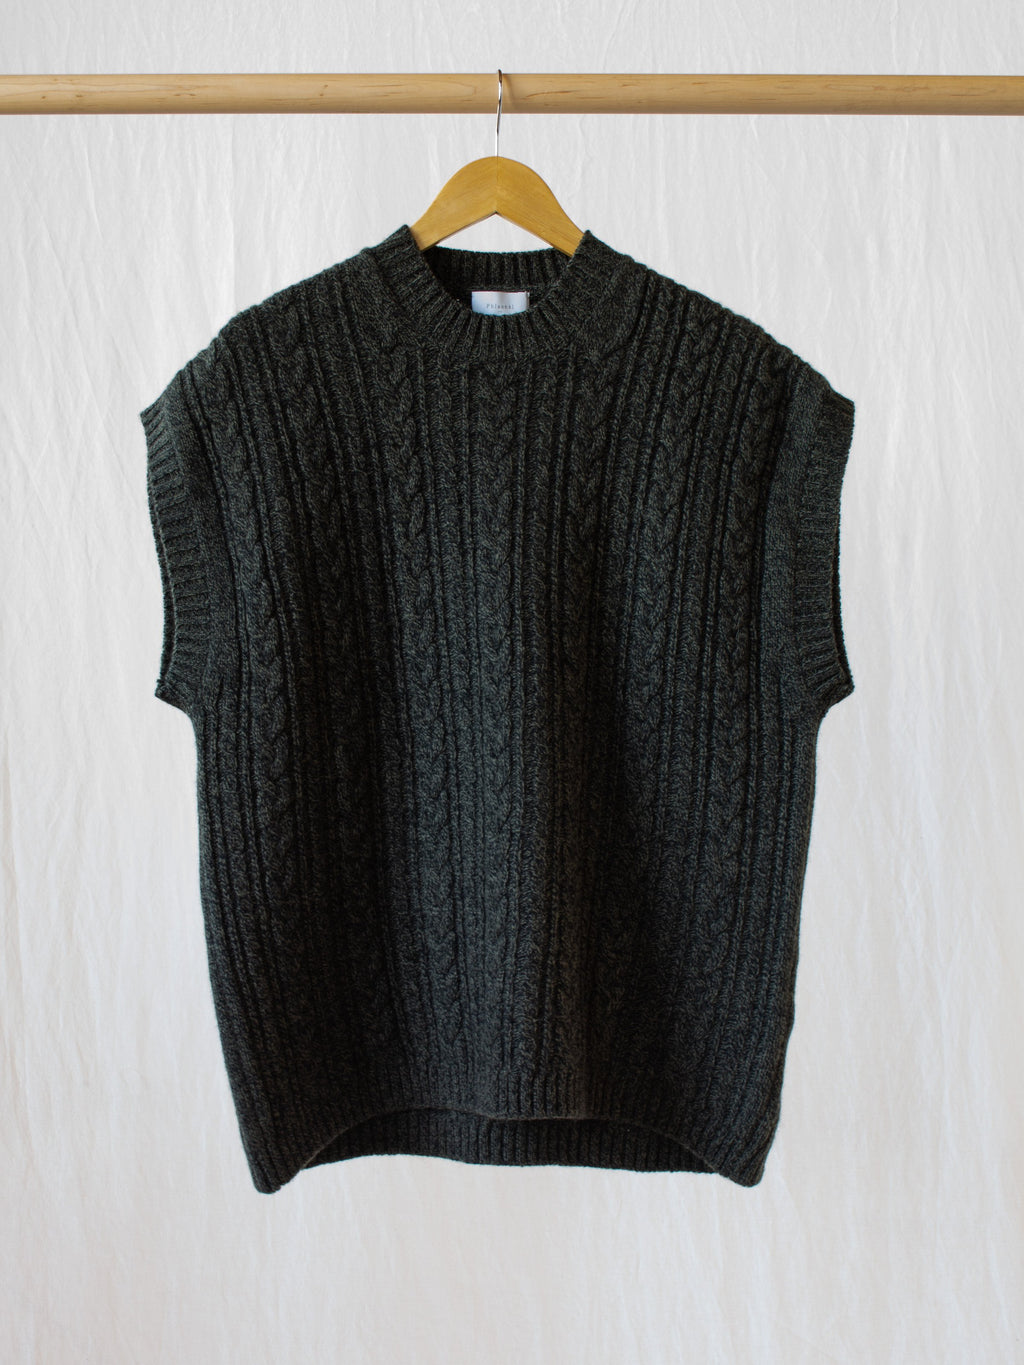 Namu Shop - Phlannel Wool Yak Cable Knit Vest